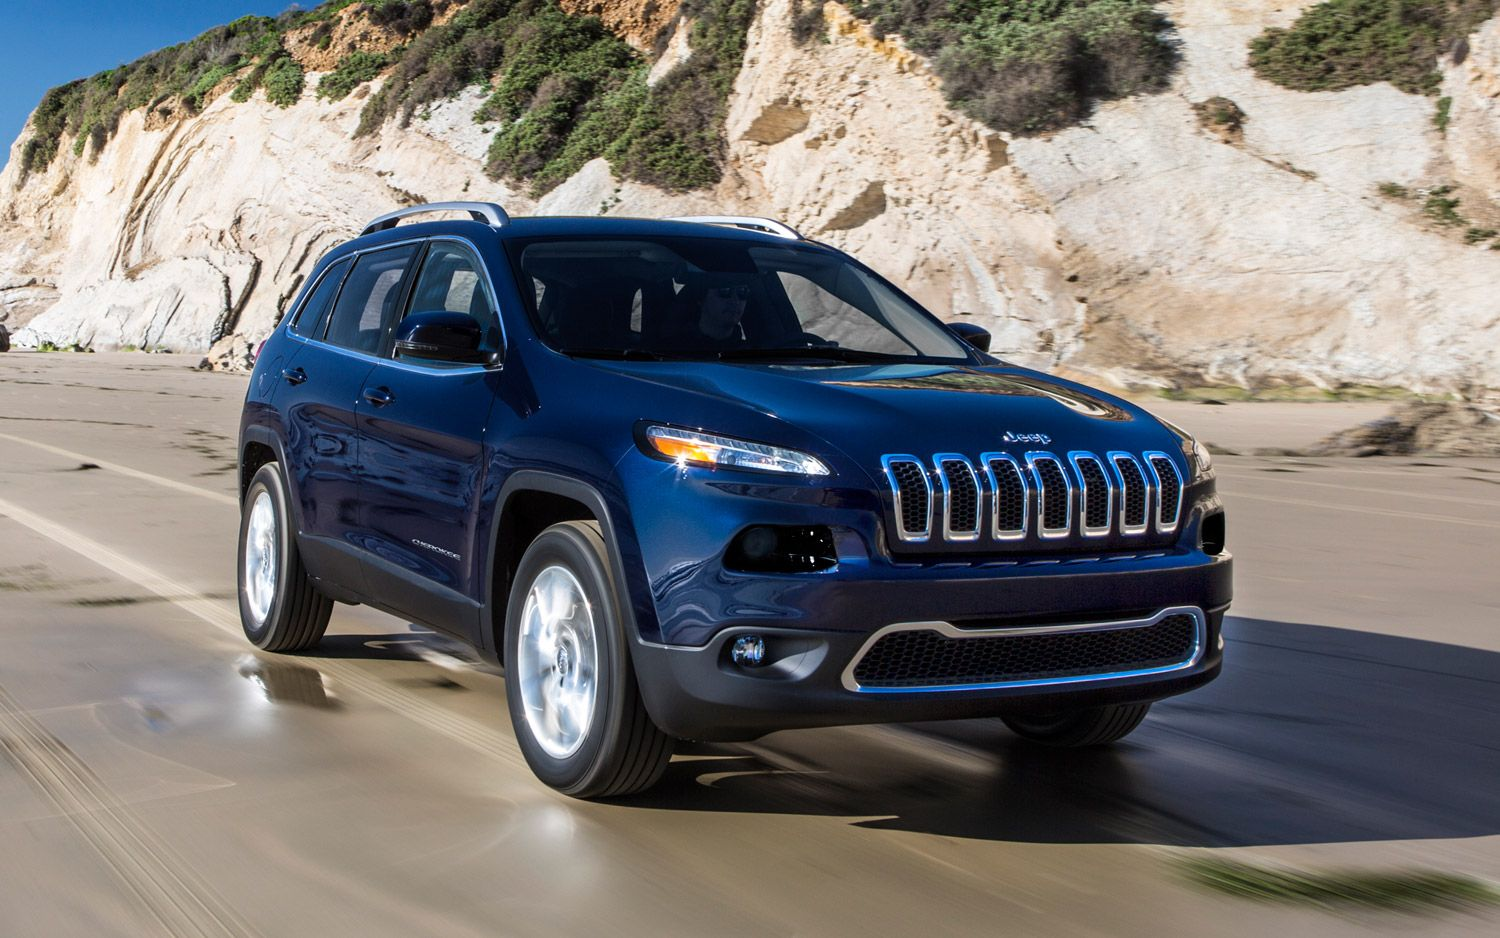 Details about 2014 2015 jeep grand cherokee blacked out front and rear jeep emblem set jeep grand cherokee cherokee and jeeps